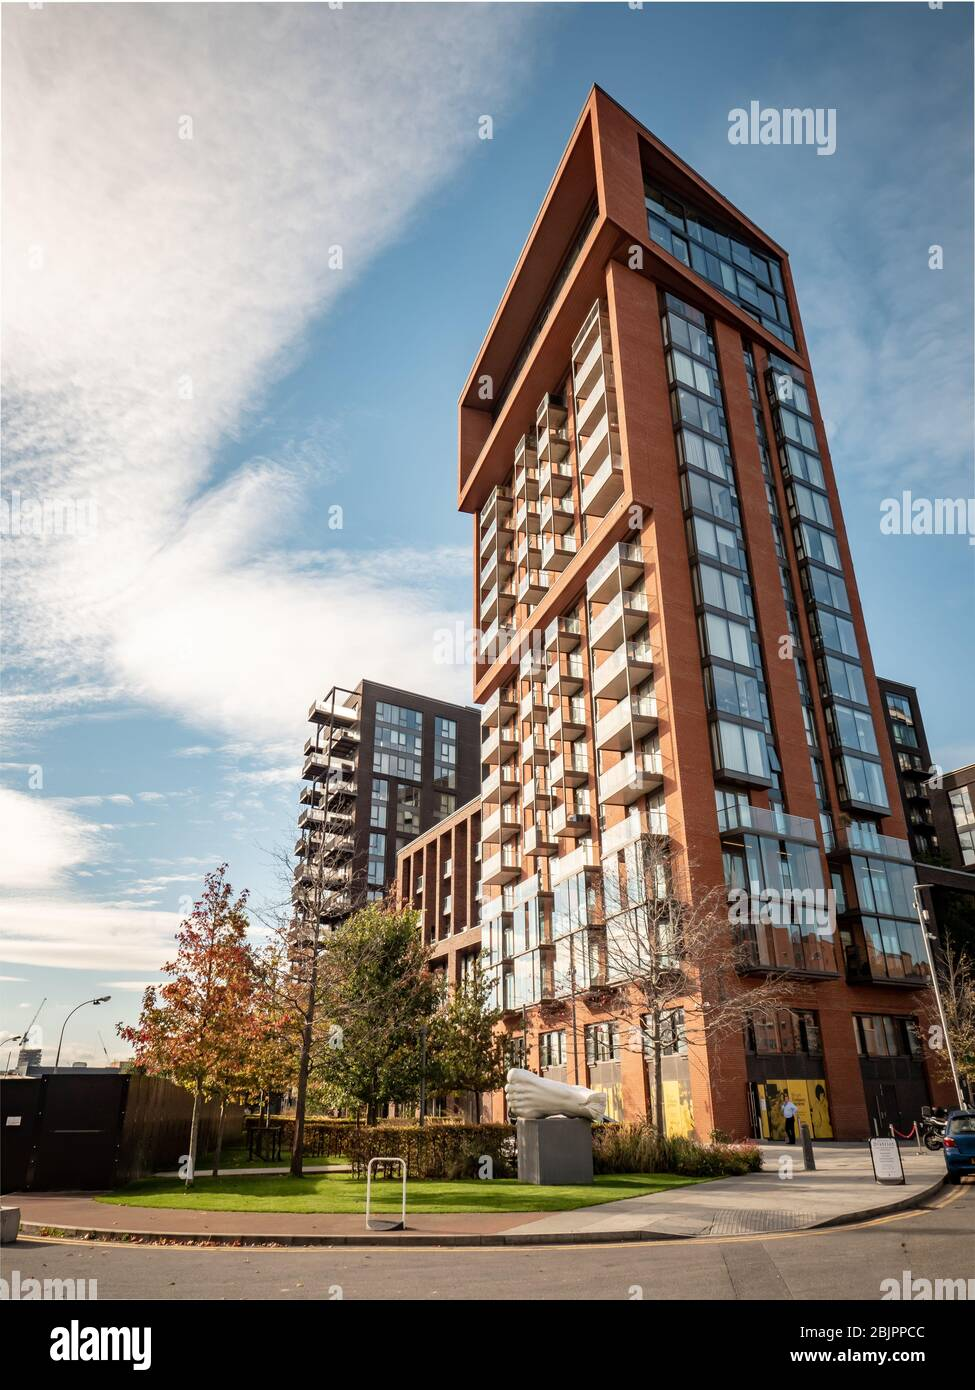 Contemporary apartments, Nine Elms, London. Wandsworth industrial area gentrification with the US Embassy and Battersea Power Station redevelopment. Stock Photo